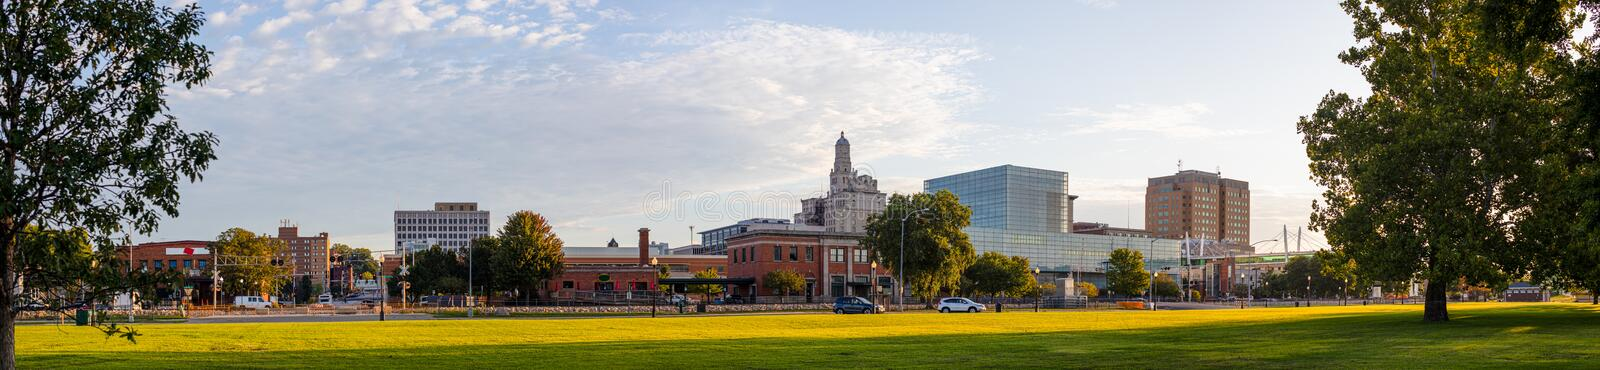 Davenport. In the state of Iowa, United States Of America, as seen from LeClaire Park royalty free stock photo